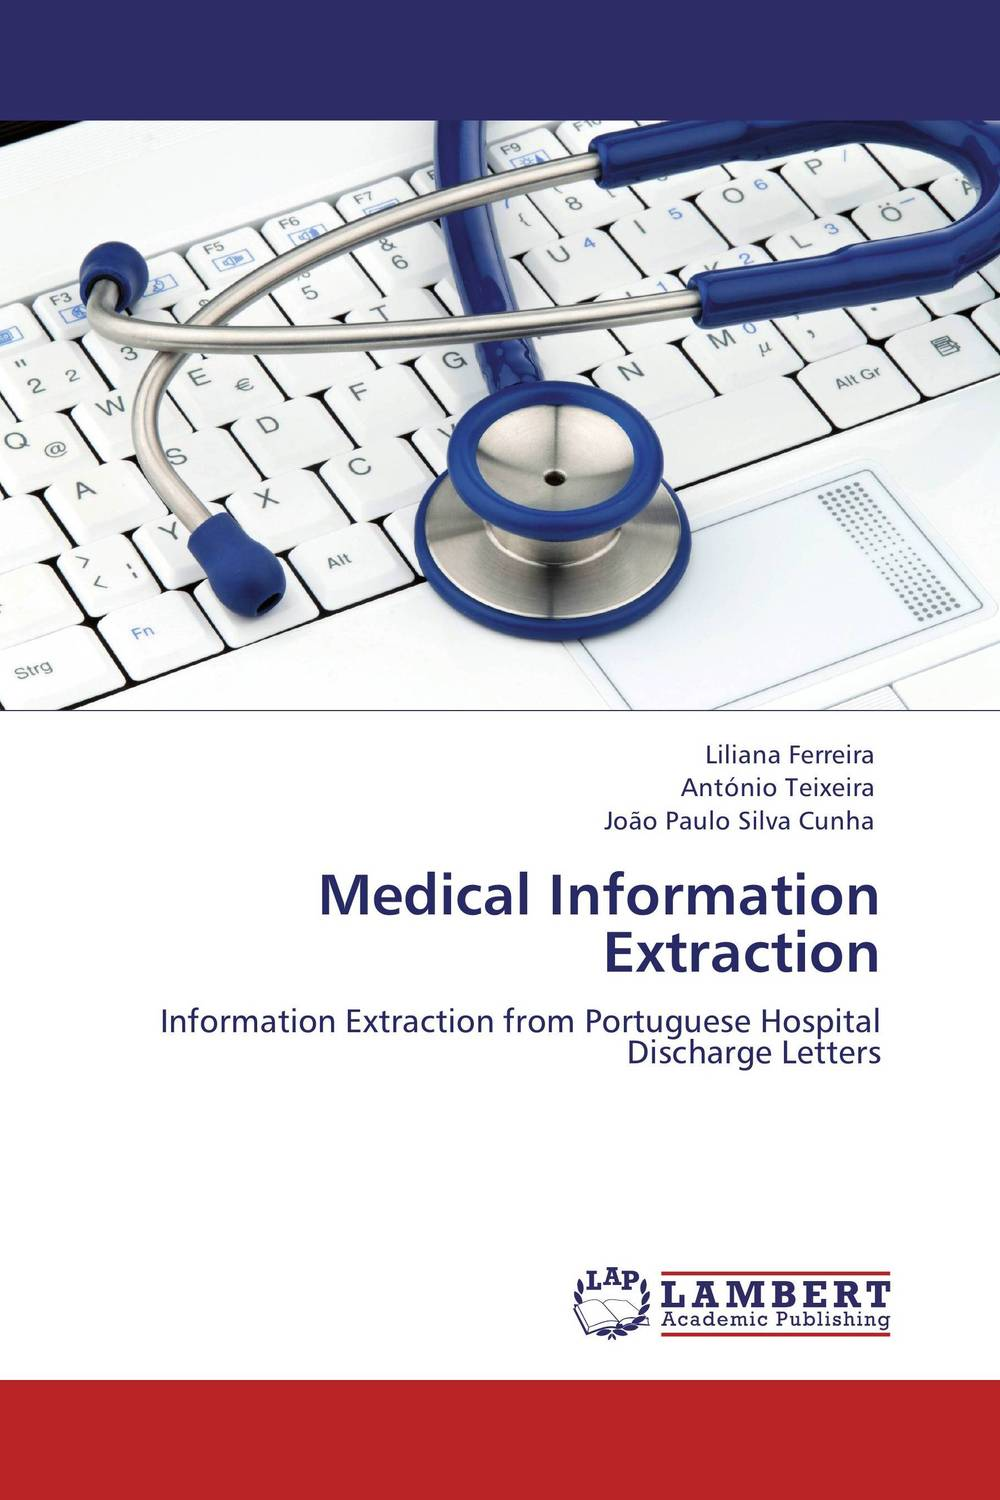 Medical Information Extraction clustering information entities based on statistical methods